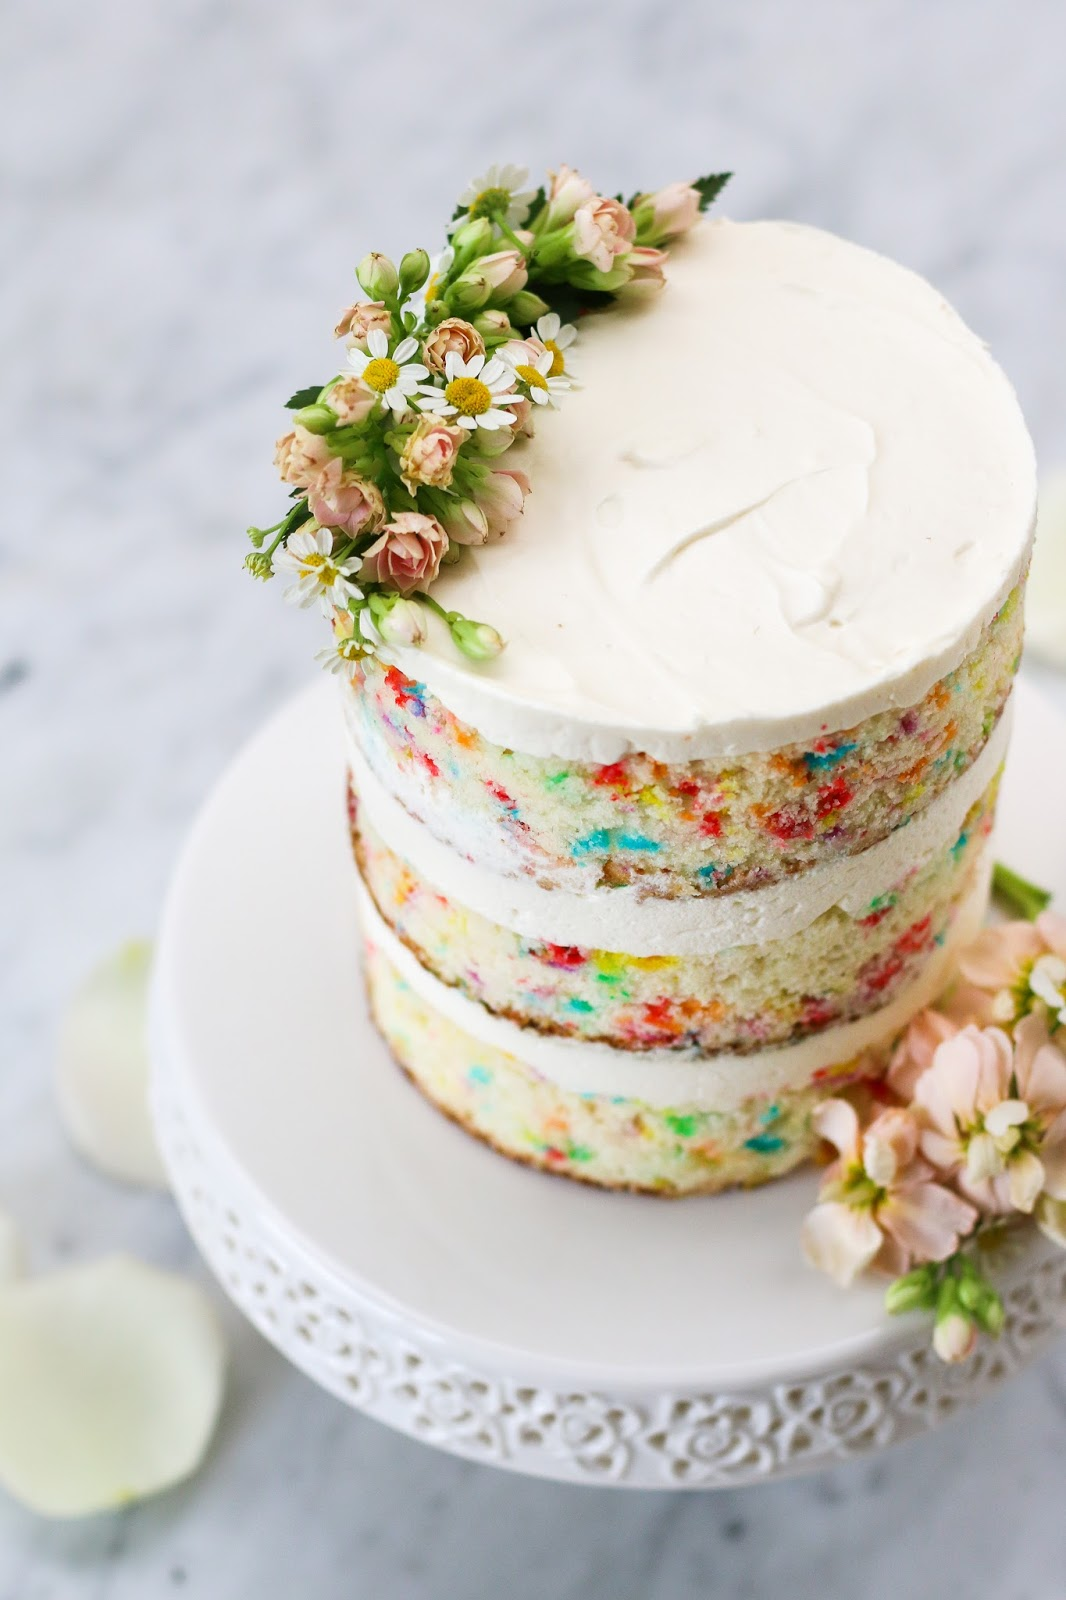 Cream Cheese Frosting For Funfetti Cake